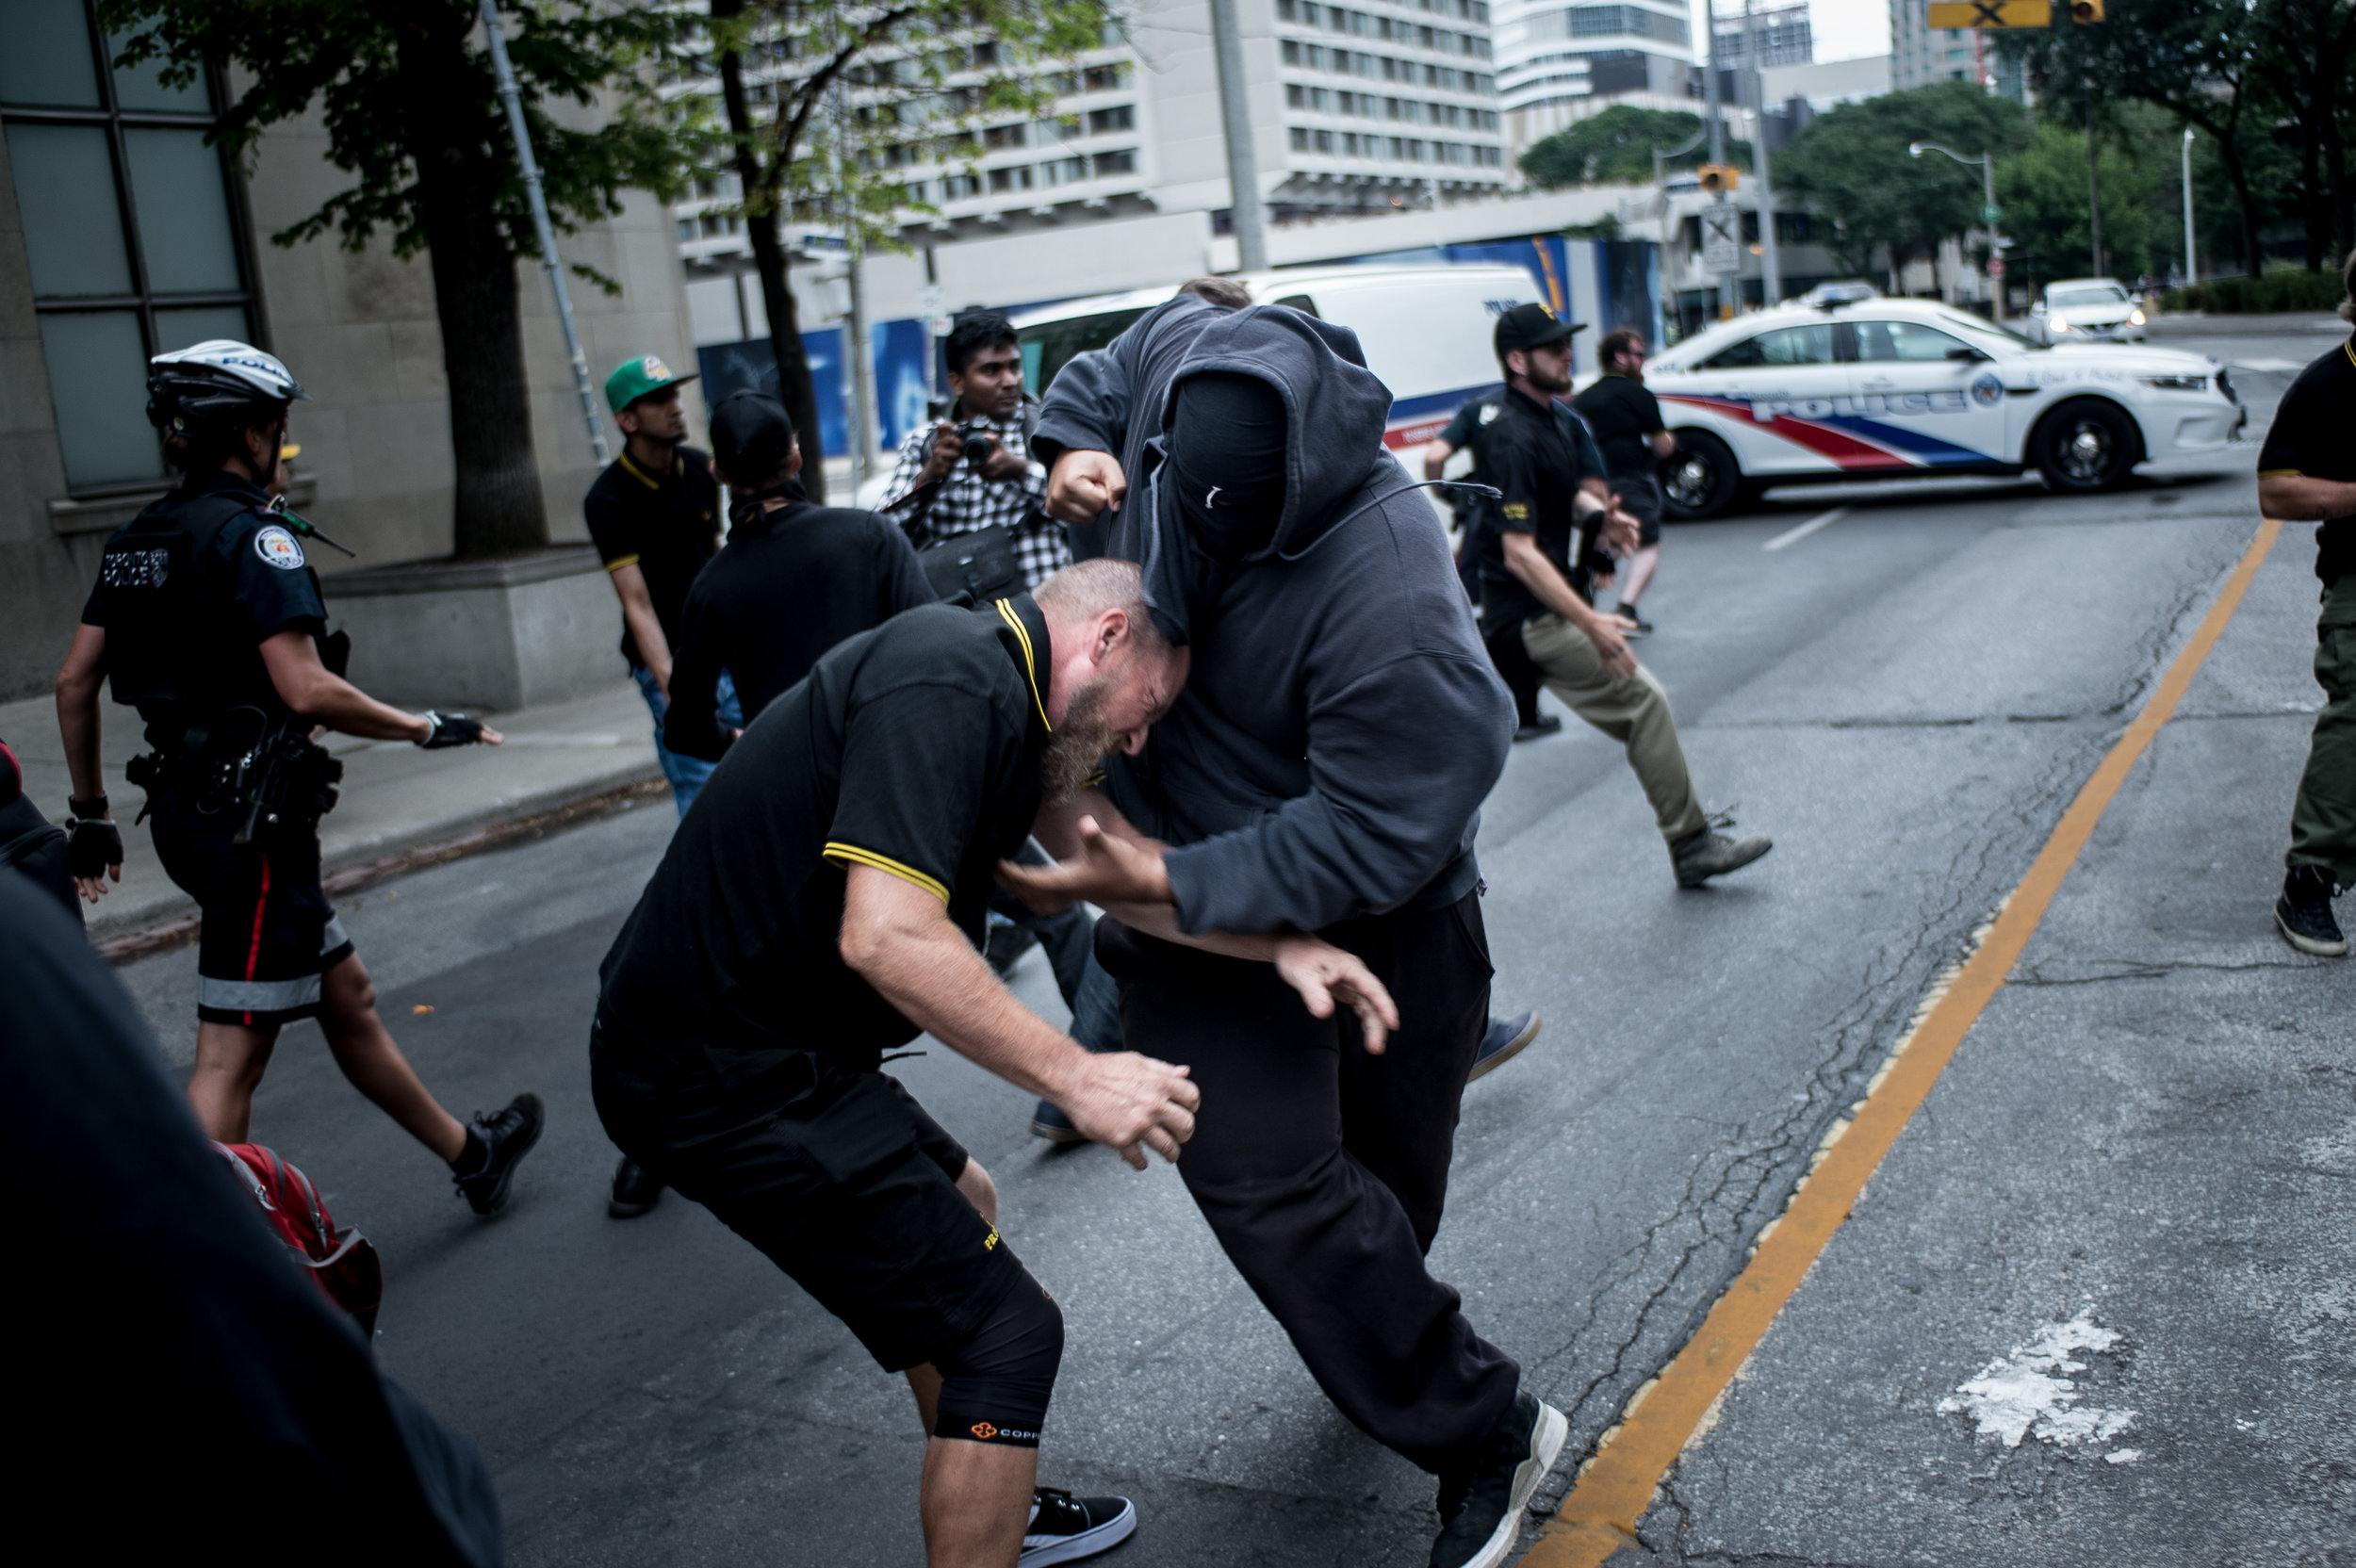 After a group of Proud Boys get around police and charge the Antifa line, multiple fights ensue (ALI JAVEED/ THE UNDERGROUND)